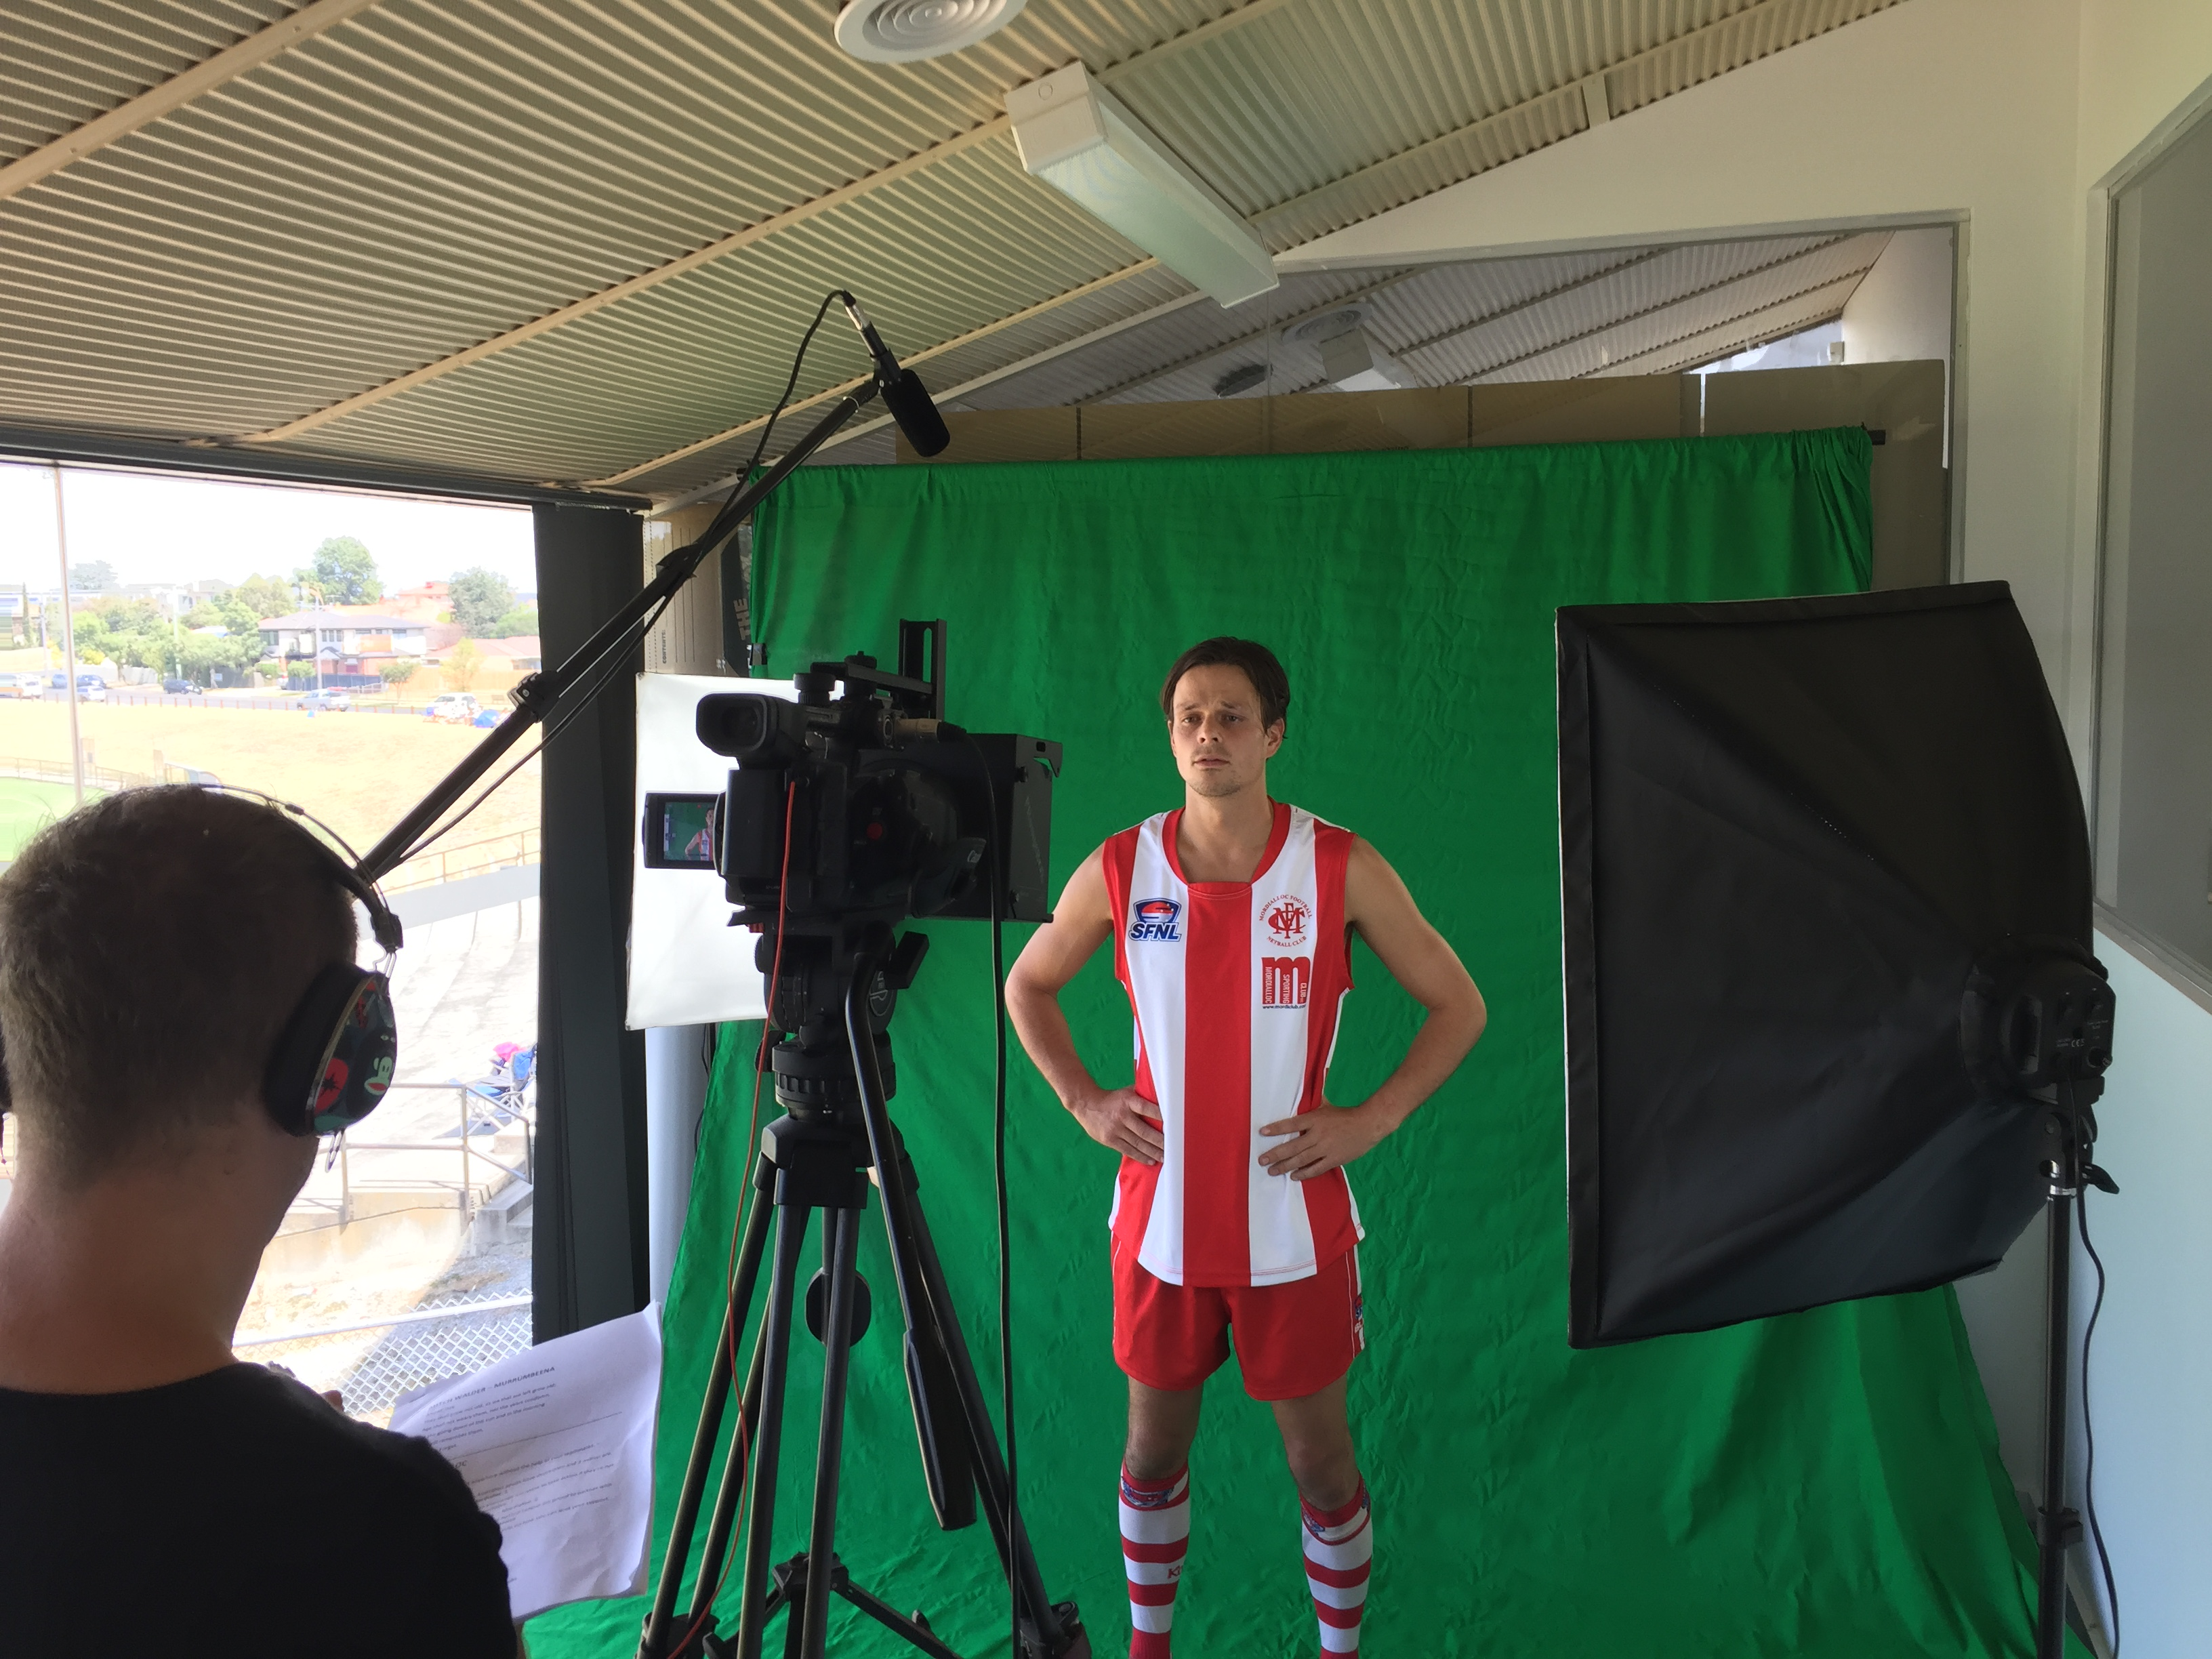 Mordialloc's Carey Neville fronts the camera at the SFNL Media Day in MArch.